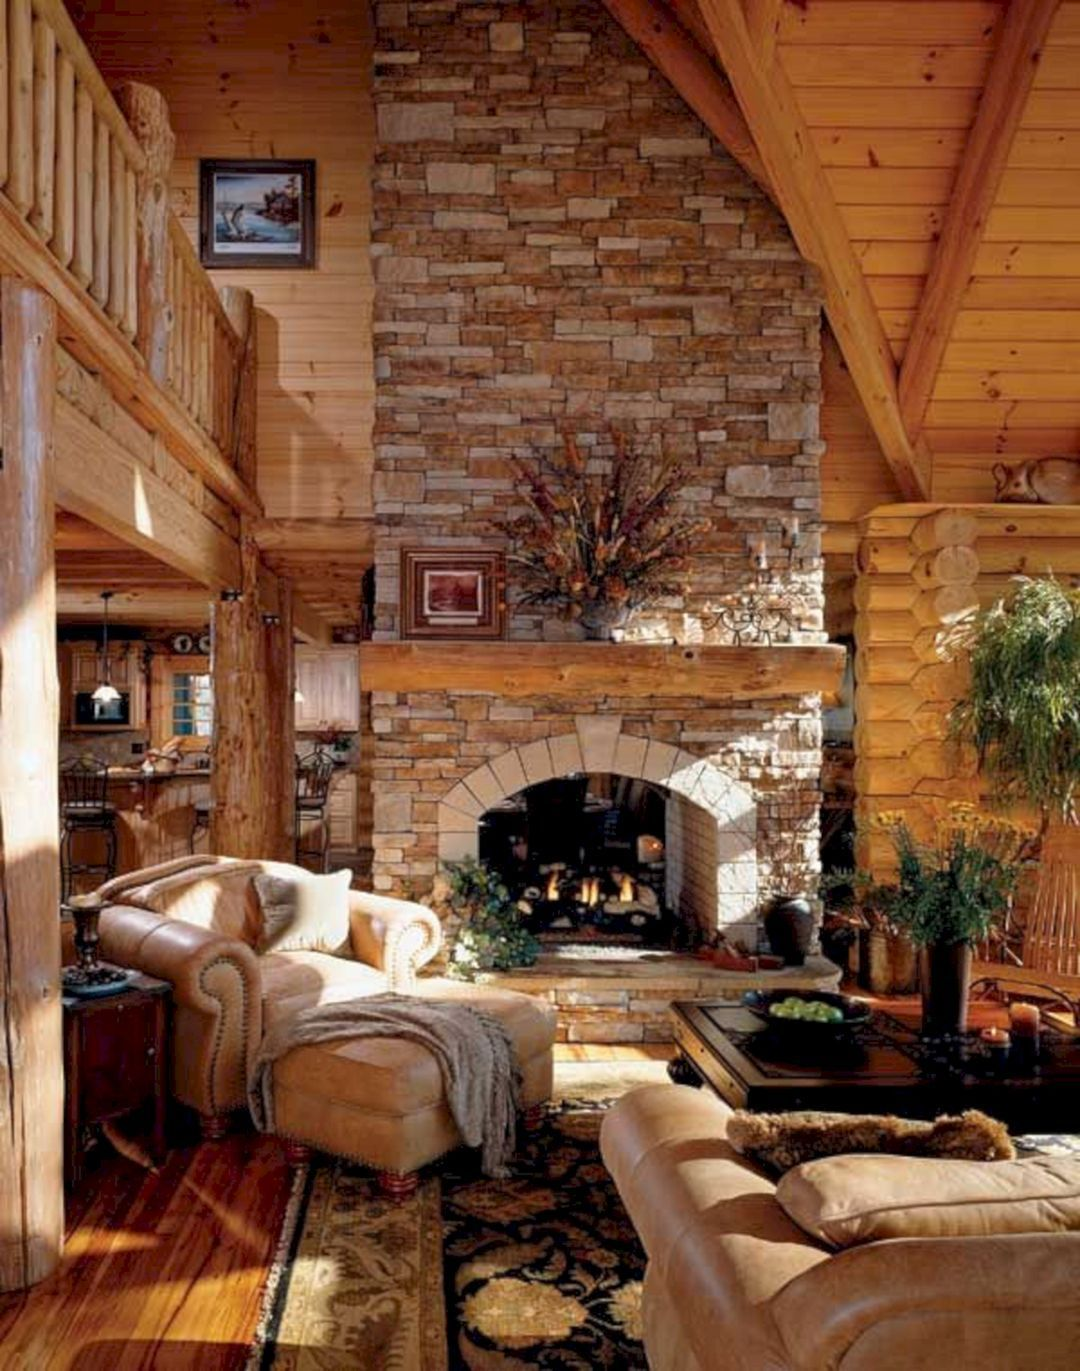 exciting log cabin cozy living rooms | 49 Superb Cozy and Rustic Cabin Style Living Rooms Ideas ...